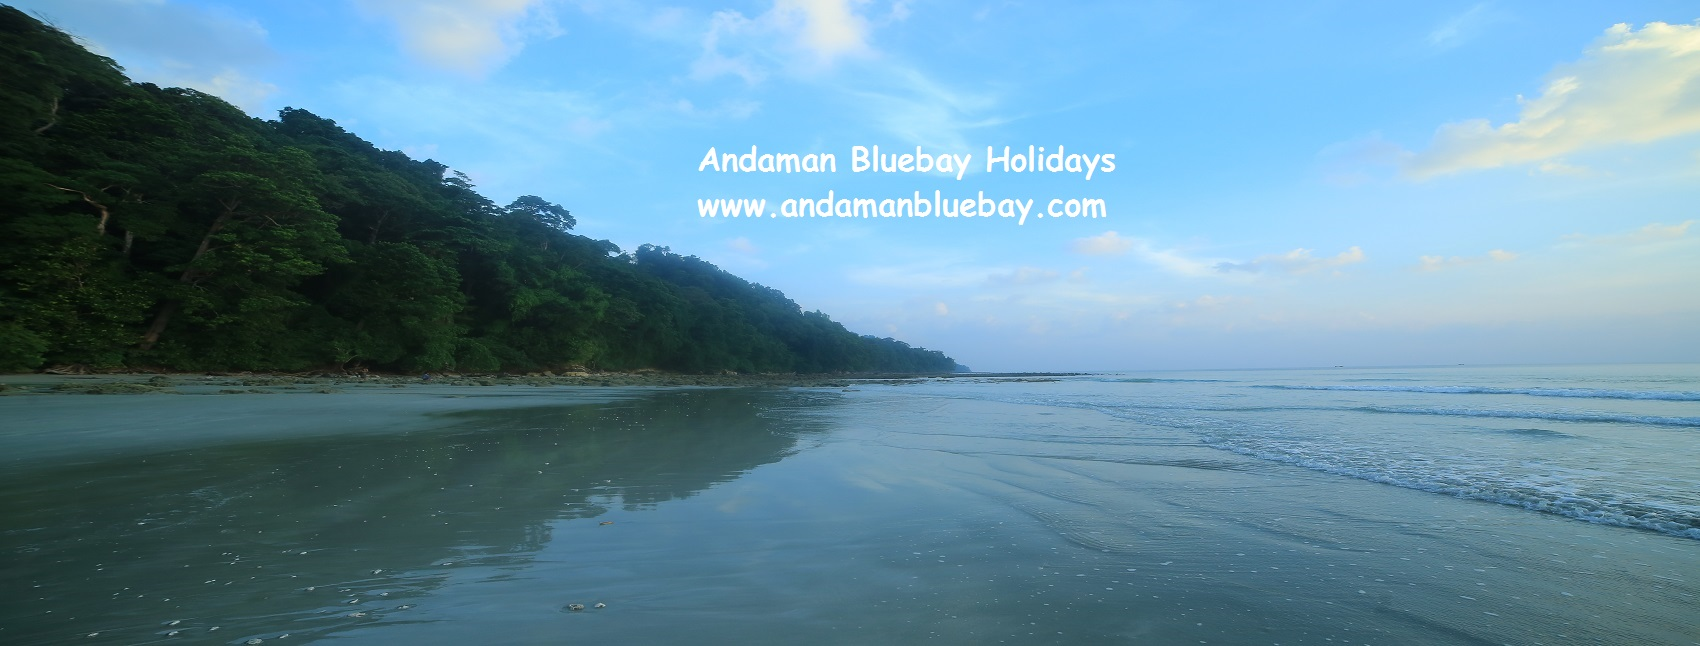 Andaman Bluebay Holidays About Tourism Andaman Tourism Andaman Guide For Planning Your Tours